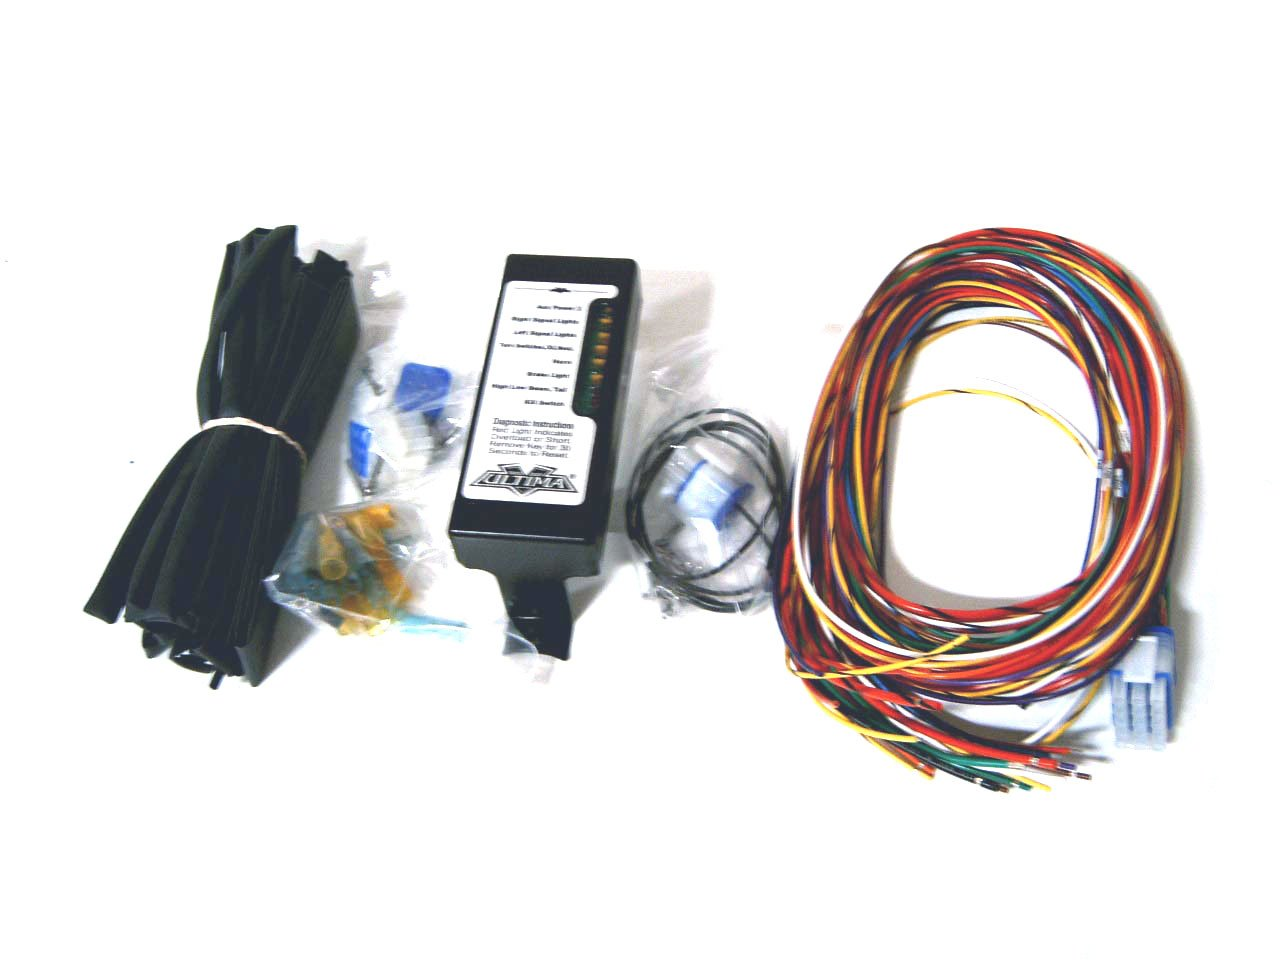 61DV2Bq5%2BHL._SL1280_ amazon com ultima complete wiring harness kit for harley davidson universal wiring harness kits at mr168.co